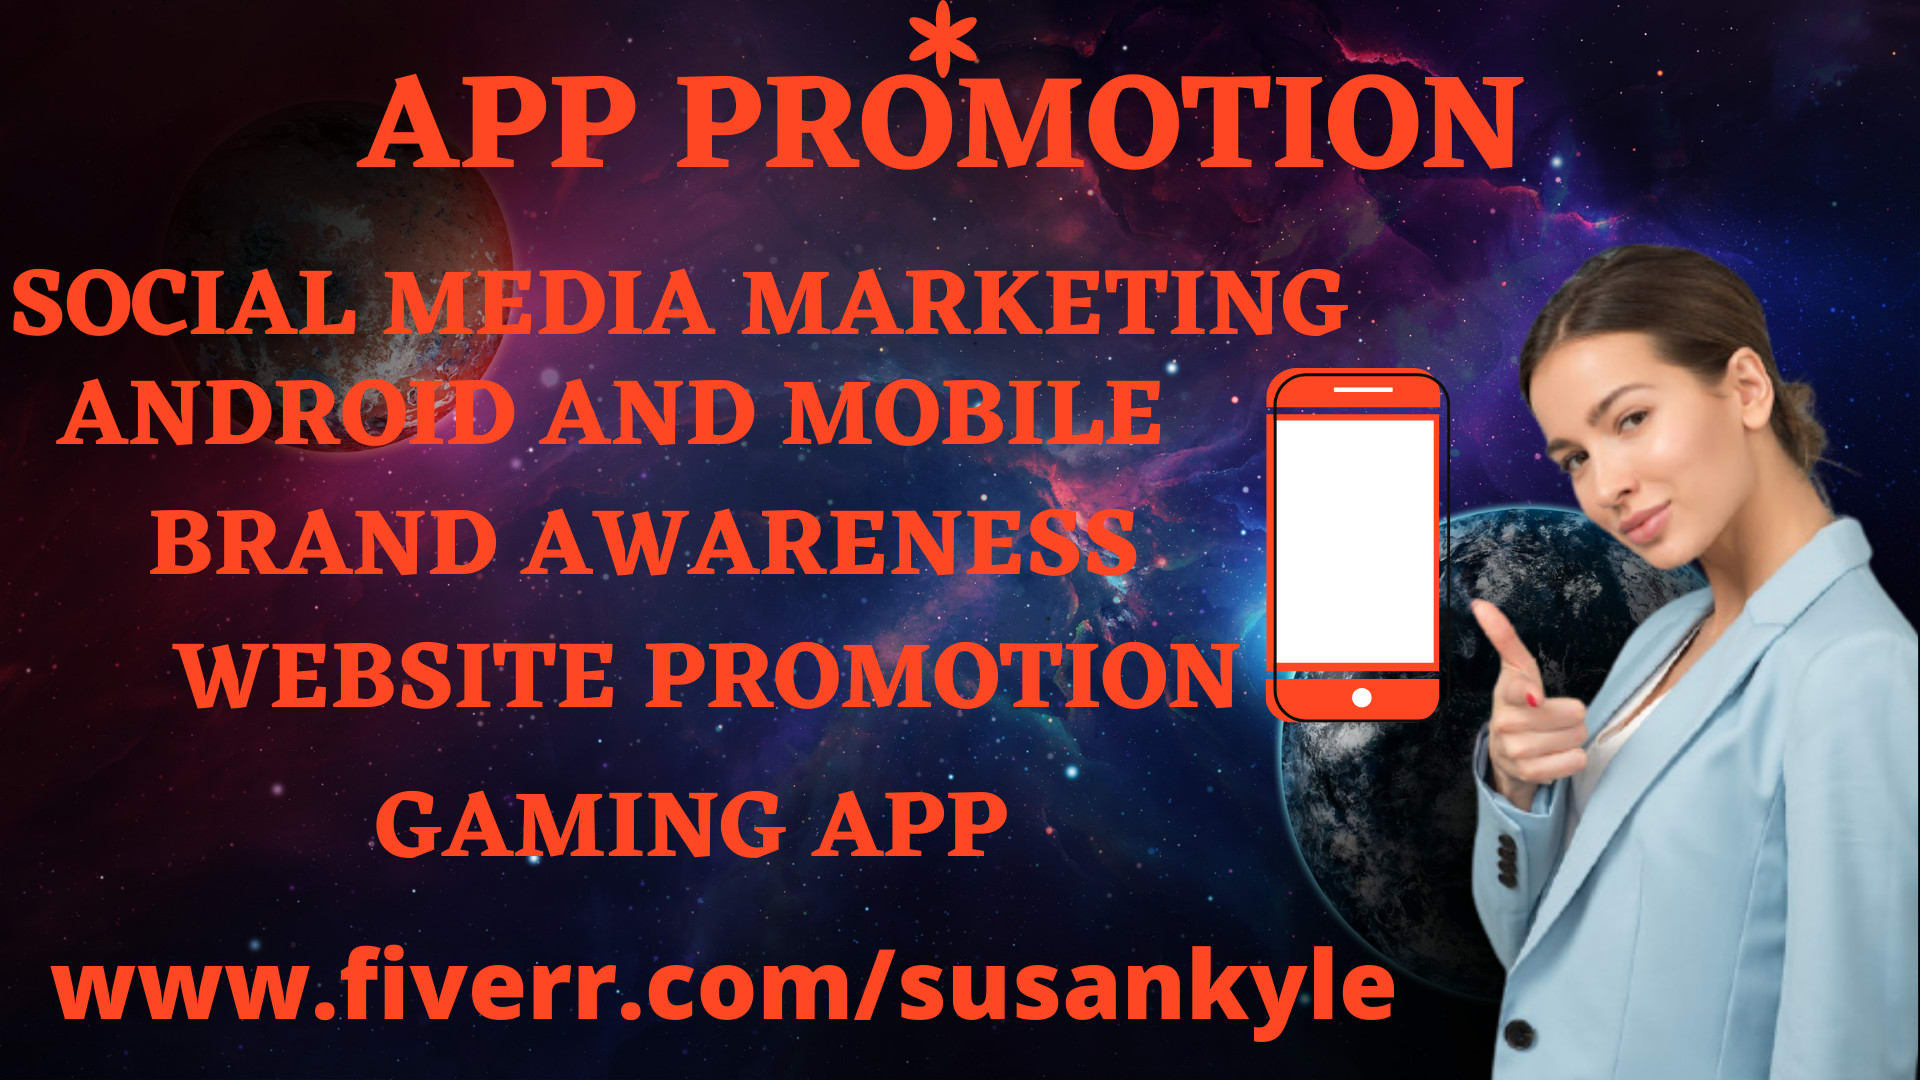 I will do android app mobile marketing on any website promotion, FiverrBox